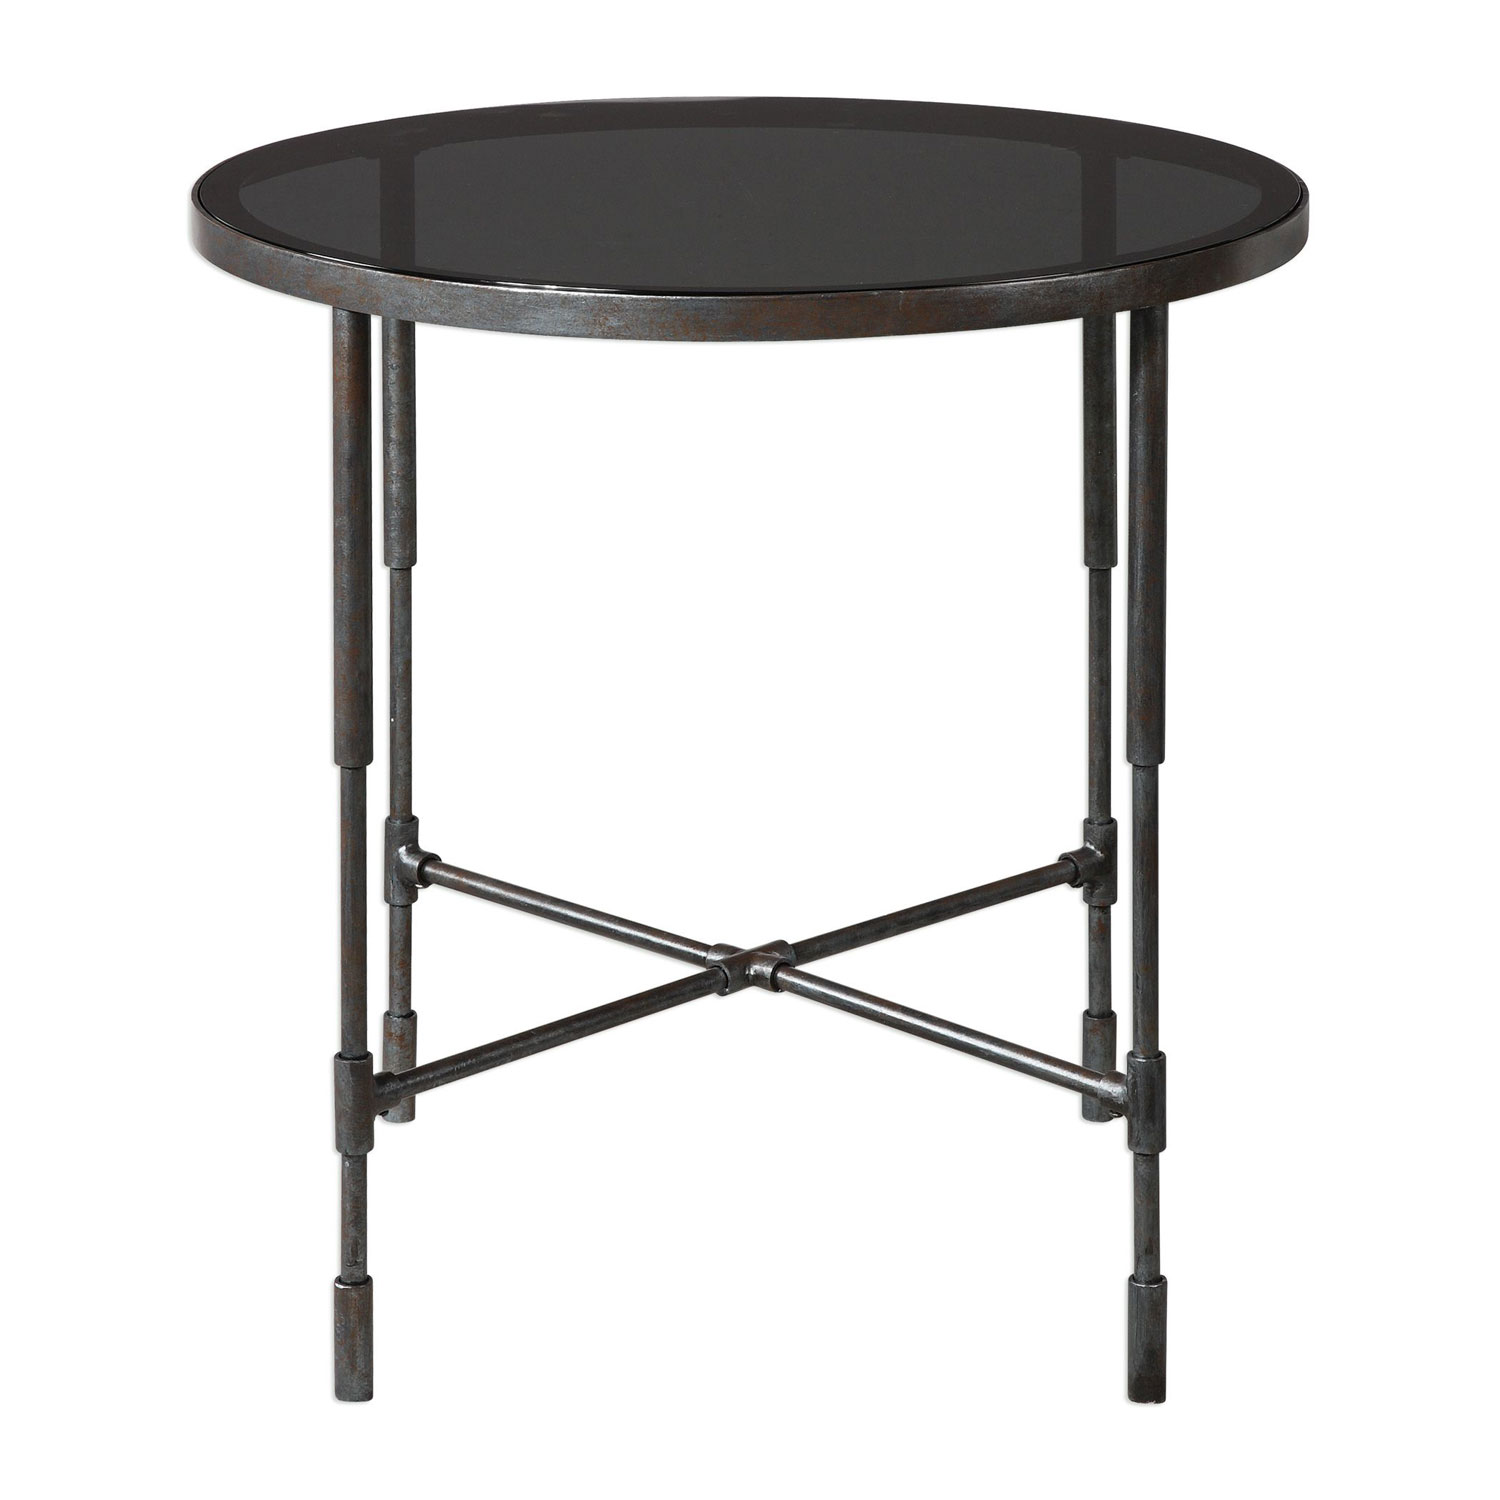 uttermost vande aged steel accent table bellacor round metal glynn hover zoom outdoor rattan chairs black dining unfinished furniture high top pub nesting tables with wheels west